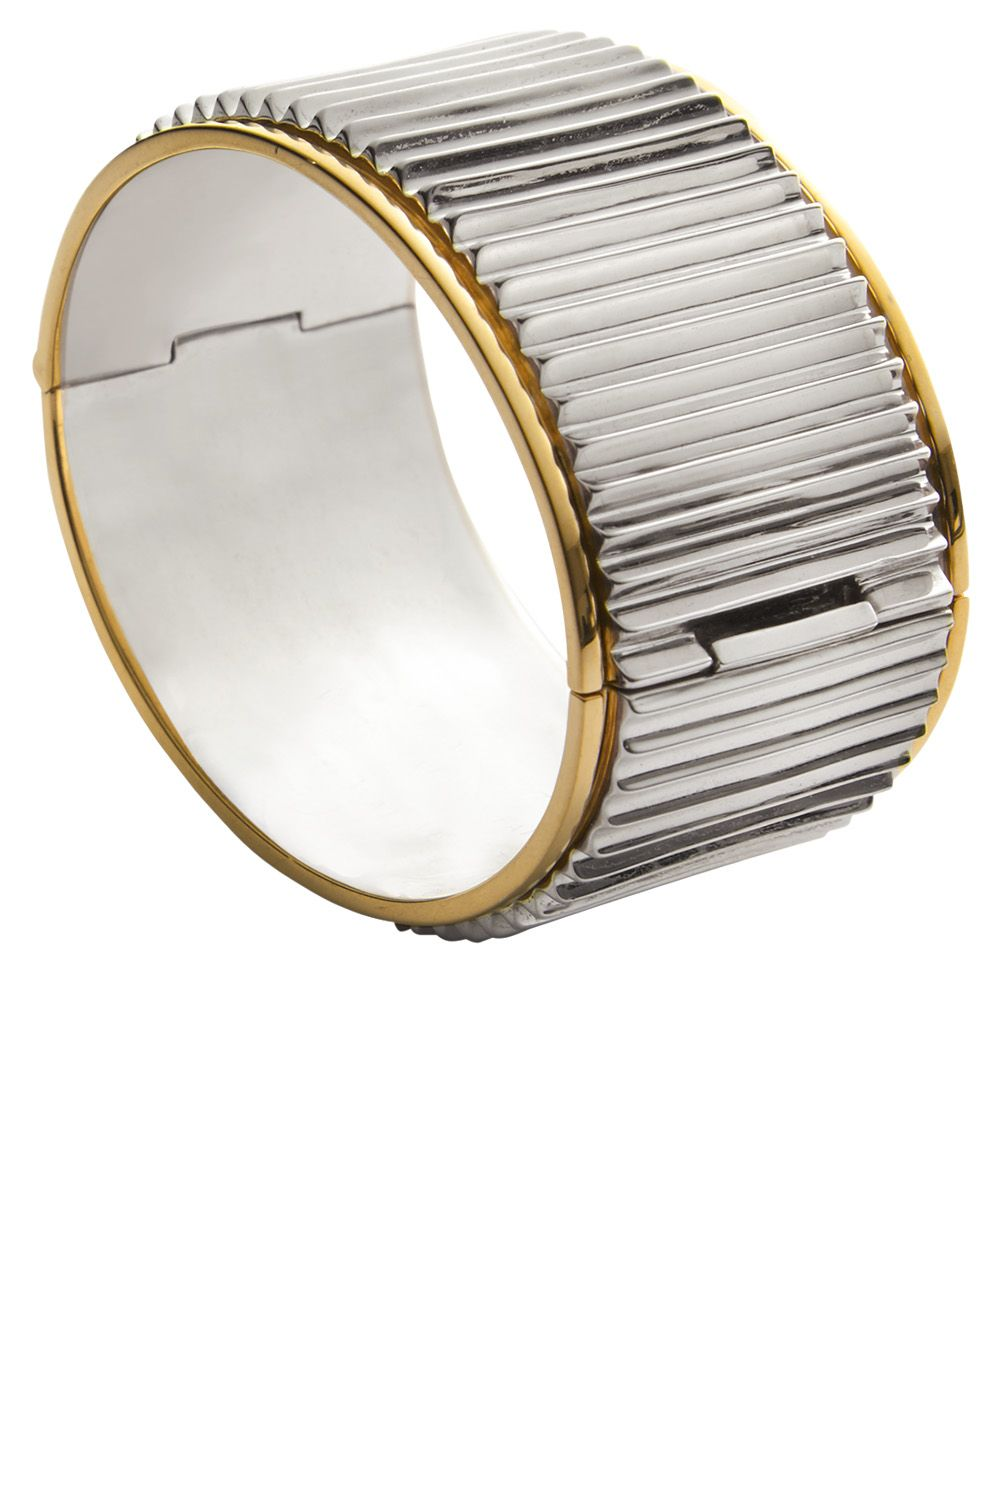 "<p><strong>Walters</strong> Faith bangle, $5,650, <a href=""http://waltersfaith.com/"" target=""_blank"">waltersfaith.com</a>. </p>"